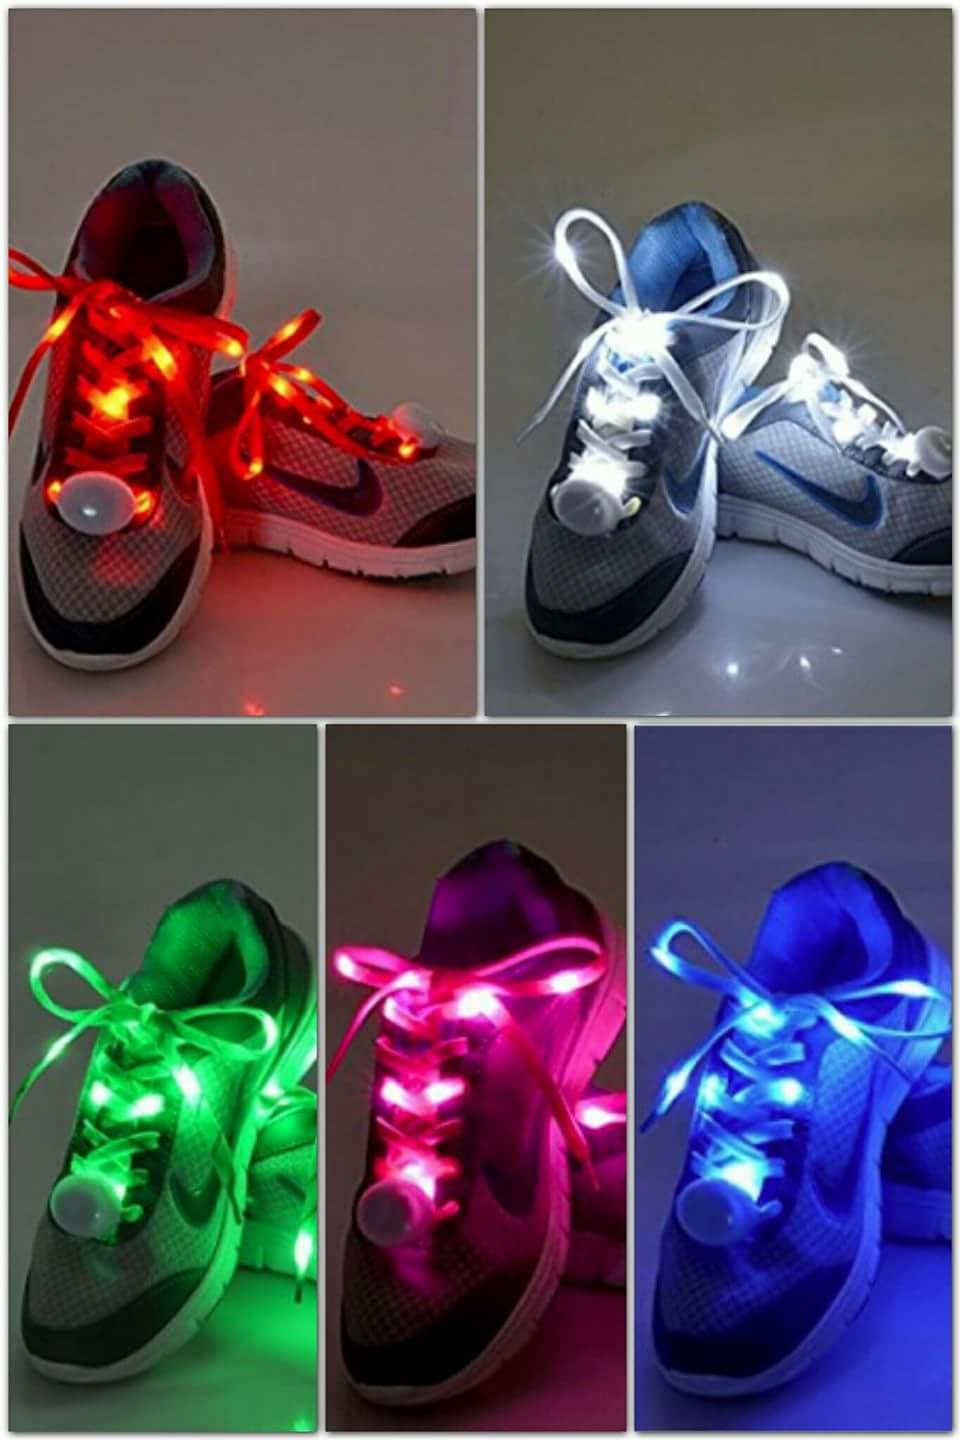 Flammi LED Nylon Shoelaces Light Up Shoe Laces with 3 Modes in 5 Colors Disco Flash Lighting the ...